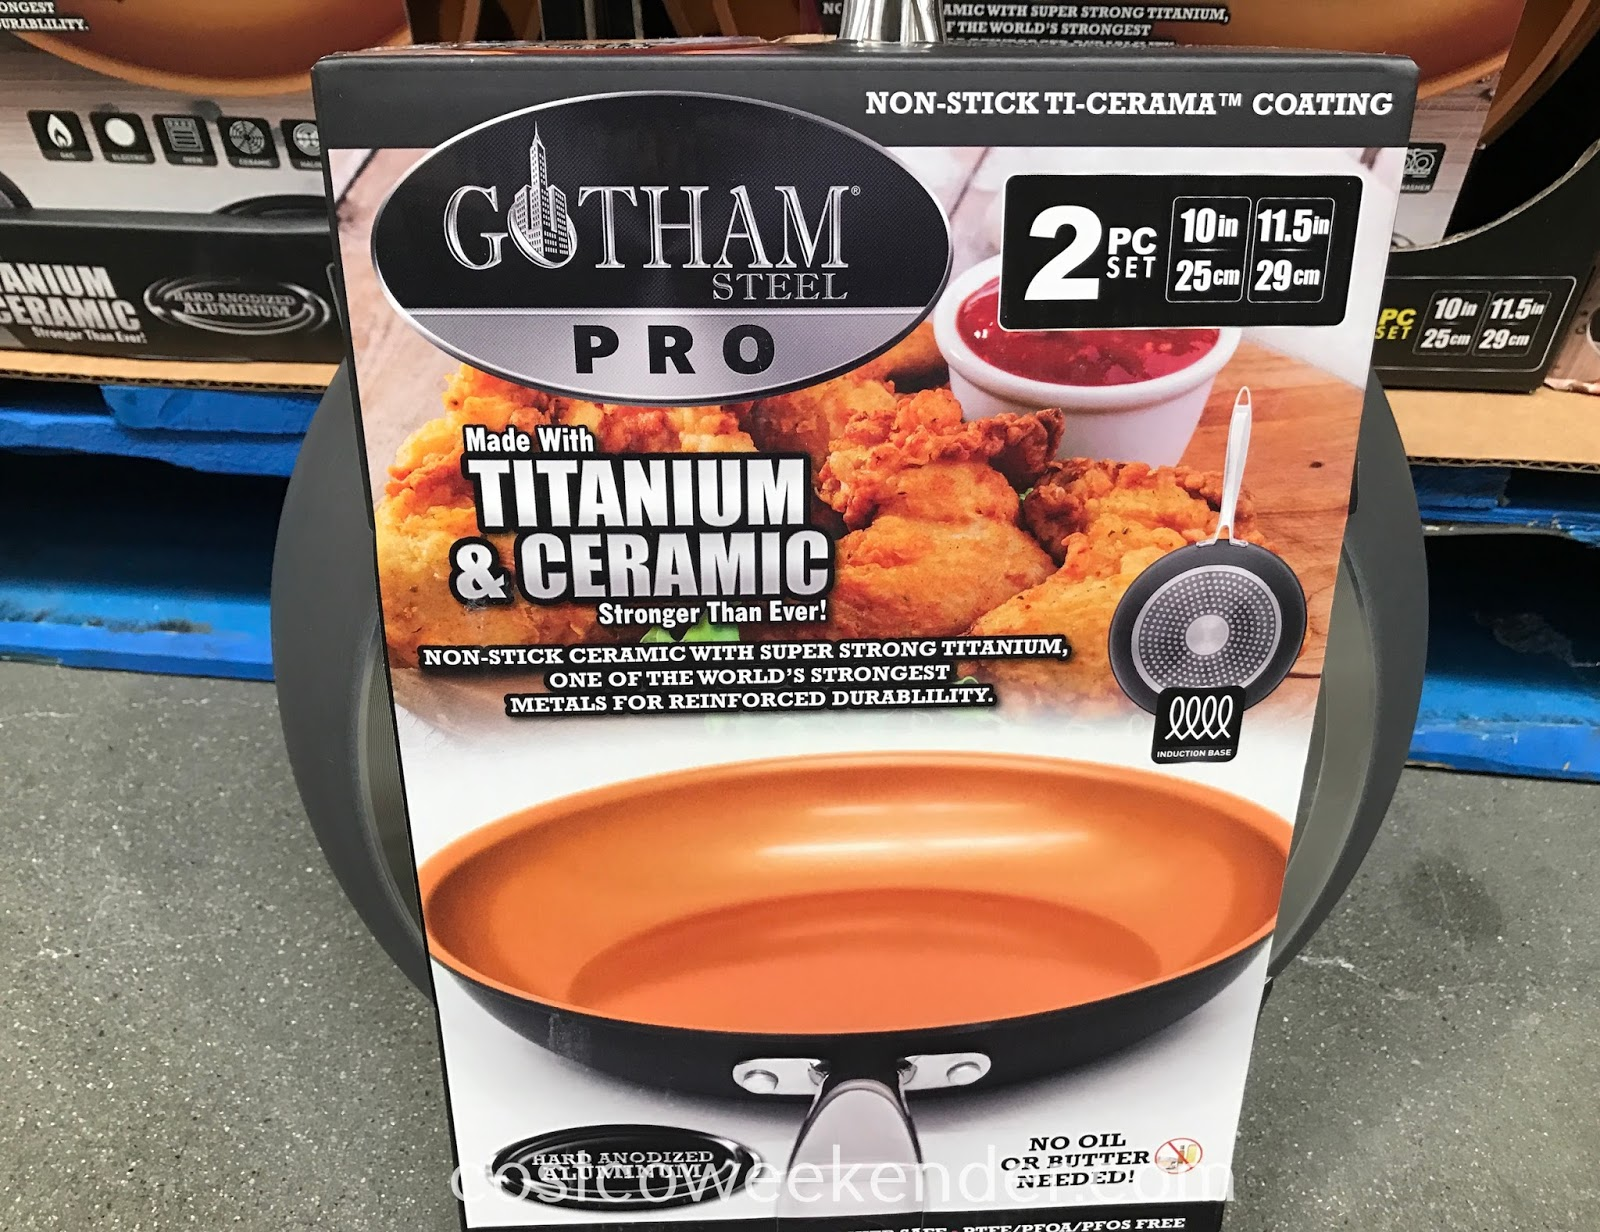 Gotham Steel Pro Ceramic Non Stick Frying Pans 2 Piece